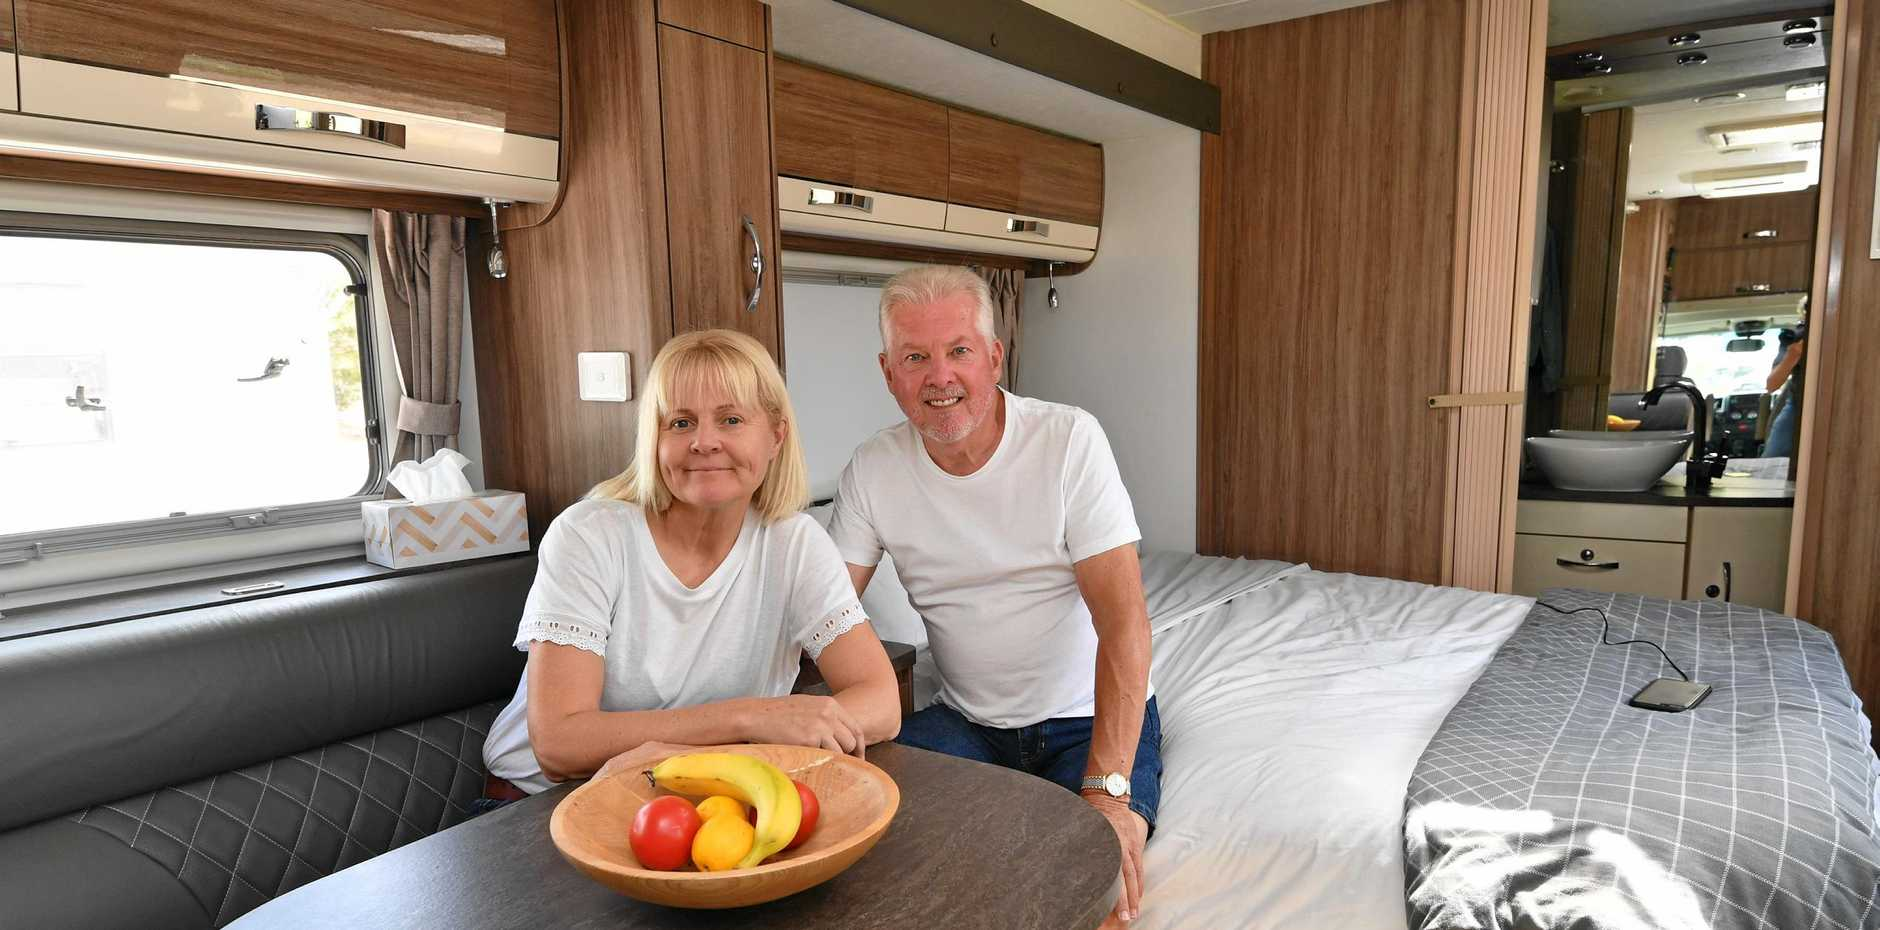 REPEAT VISIT: Norm Brereton and Bronnie Moore in their motorhome at the Alan and June Brown carpark in Maryborough.